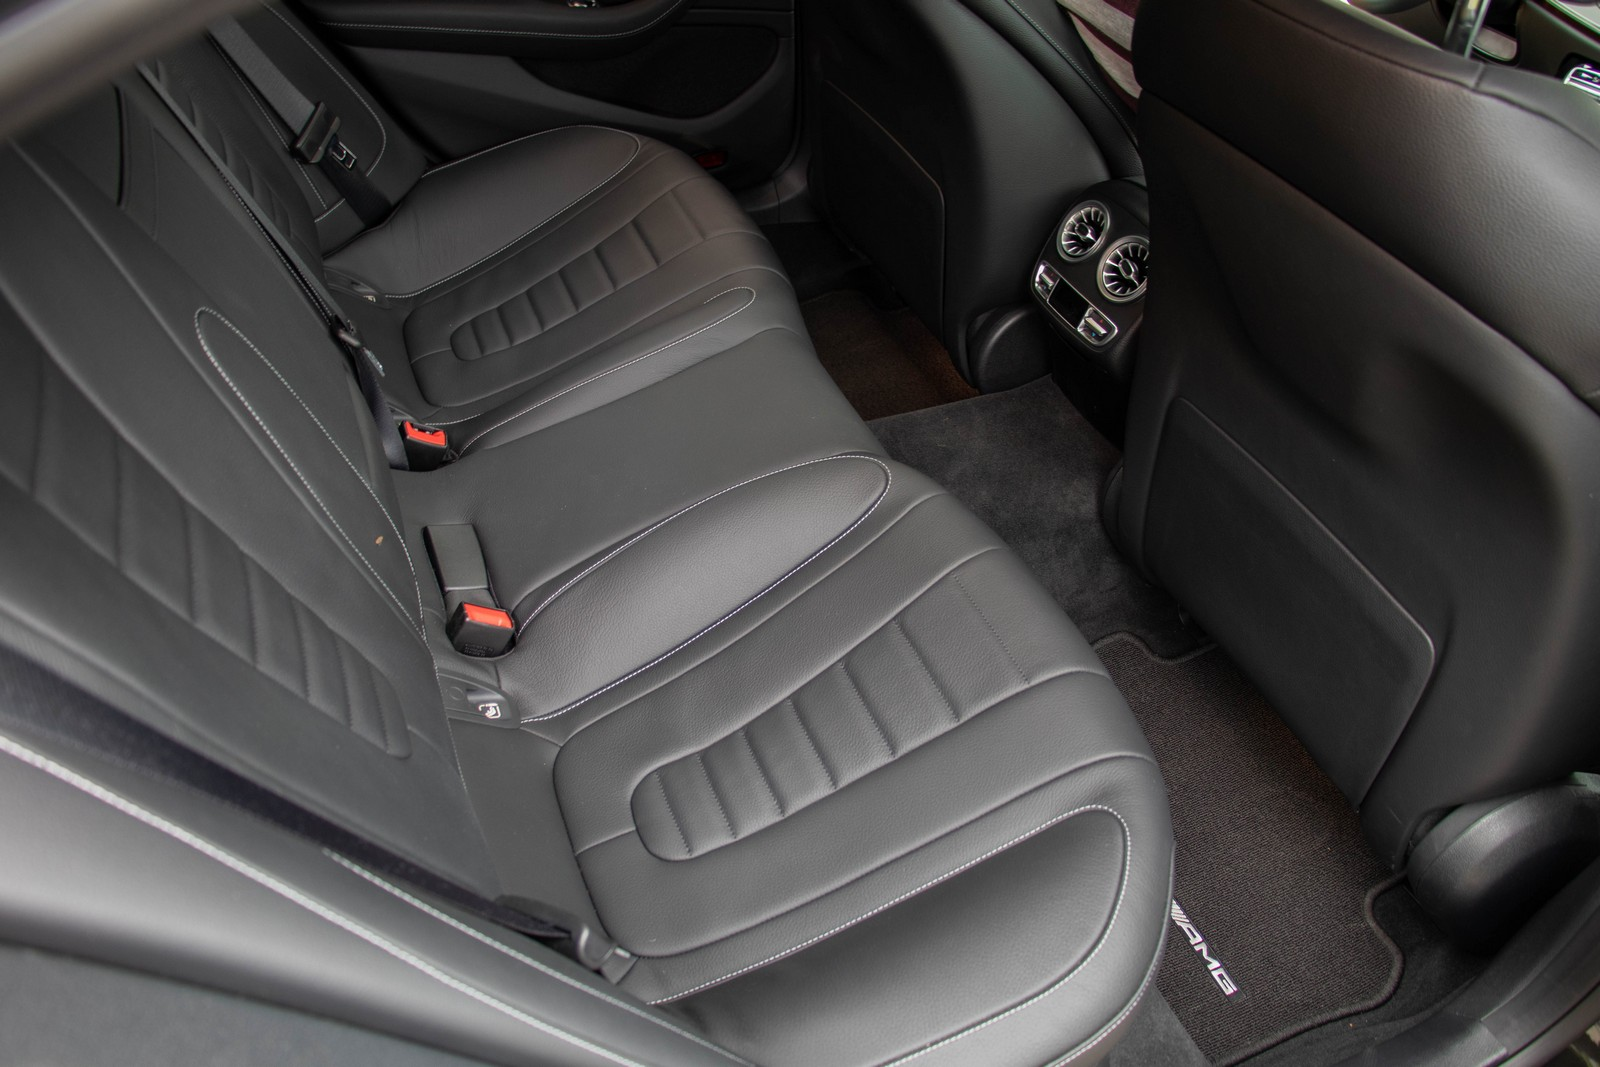 Mercedes-Benz CLS 400d Rear Seats